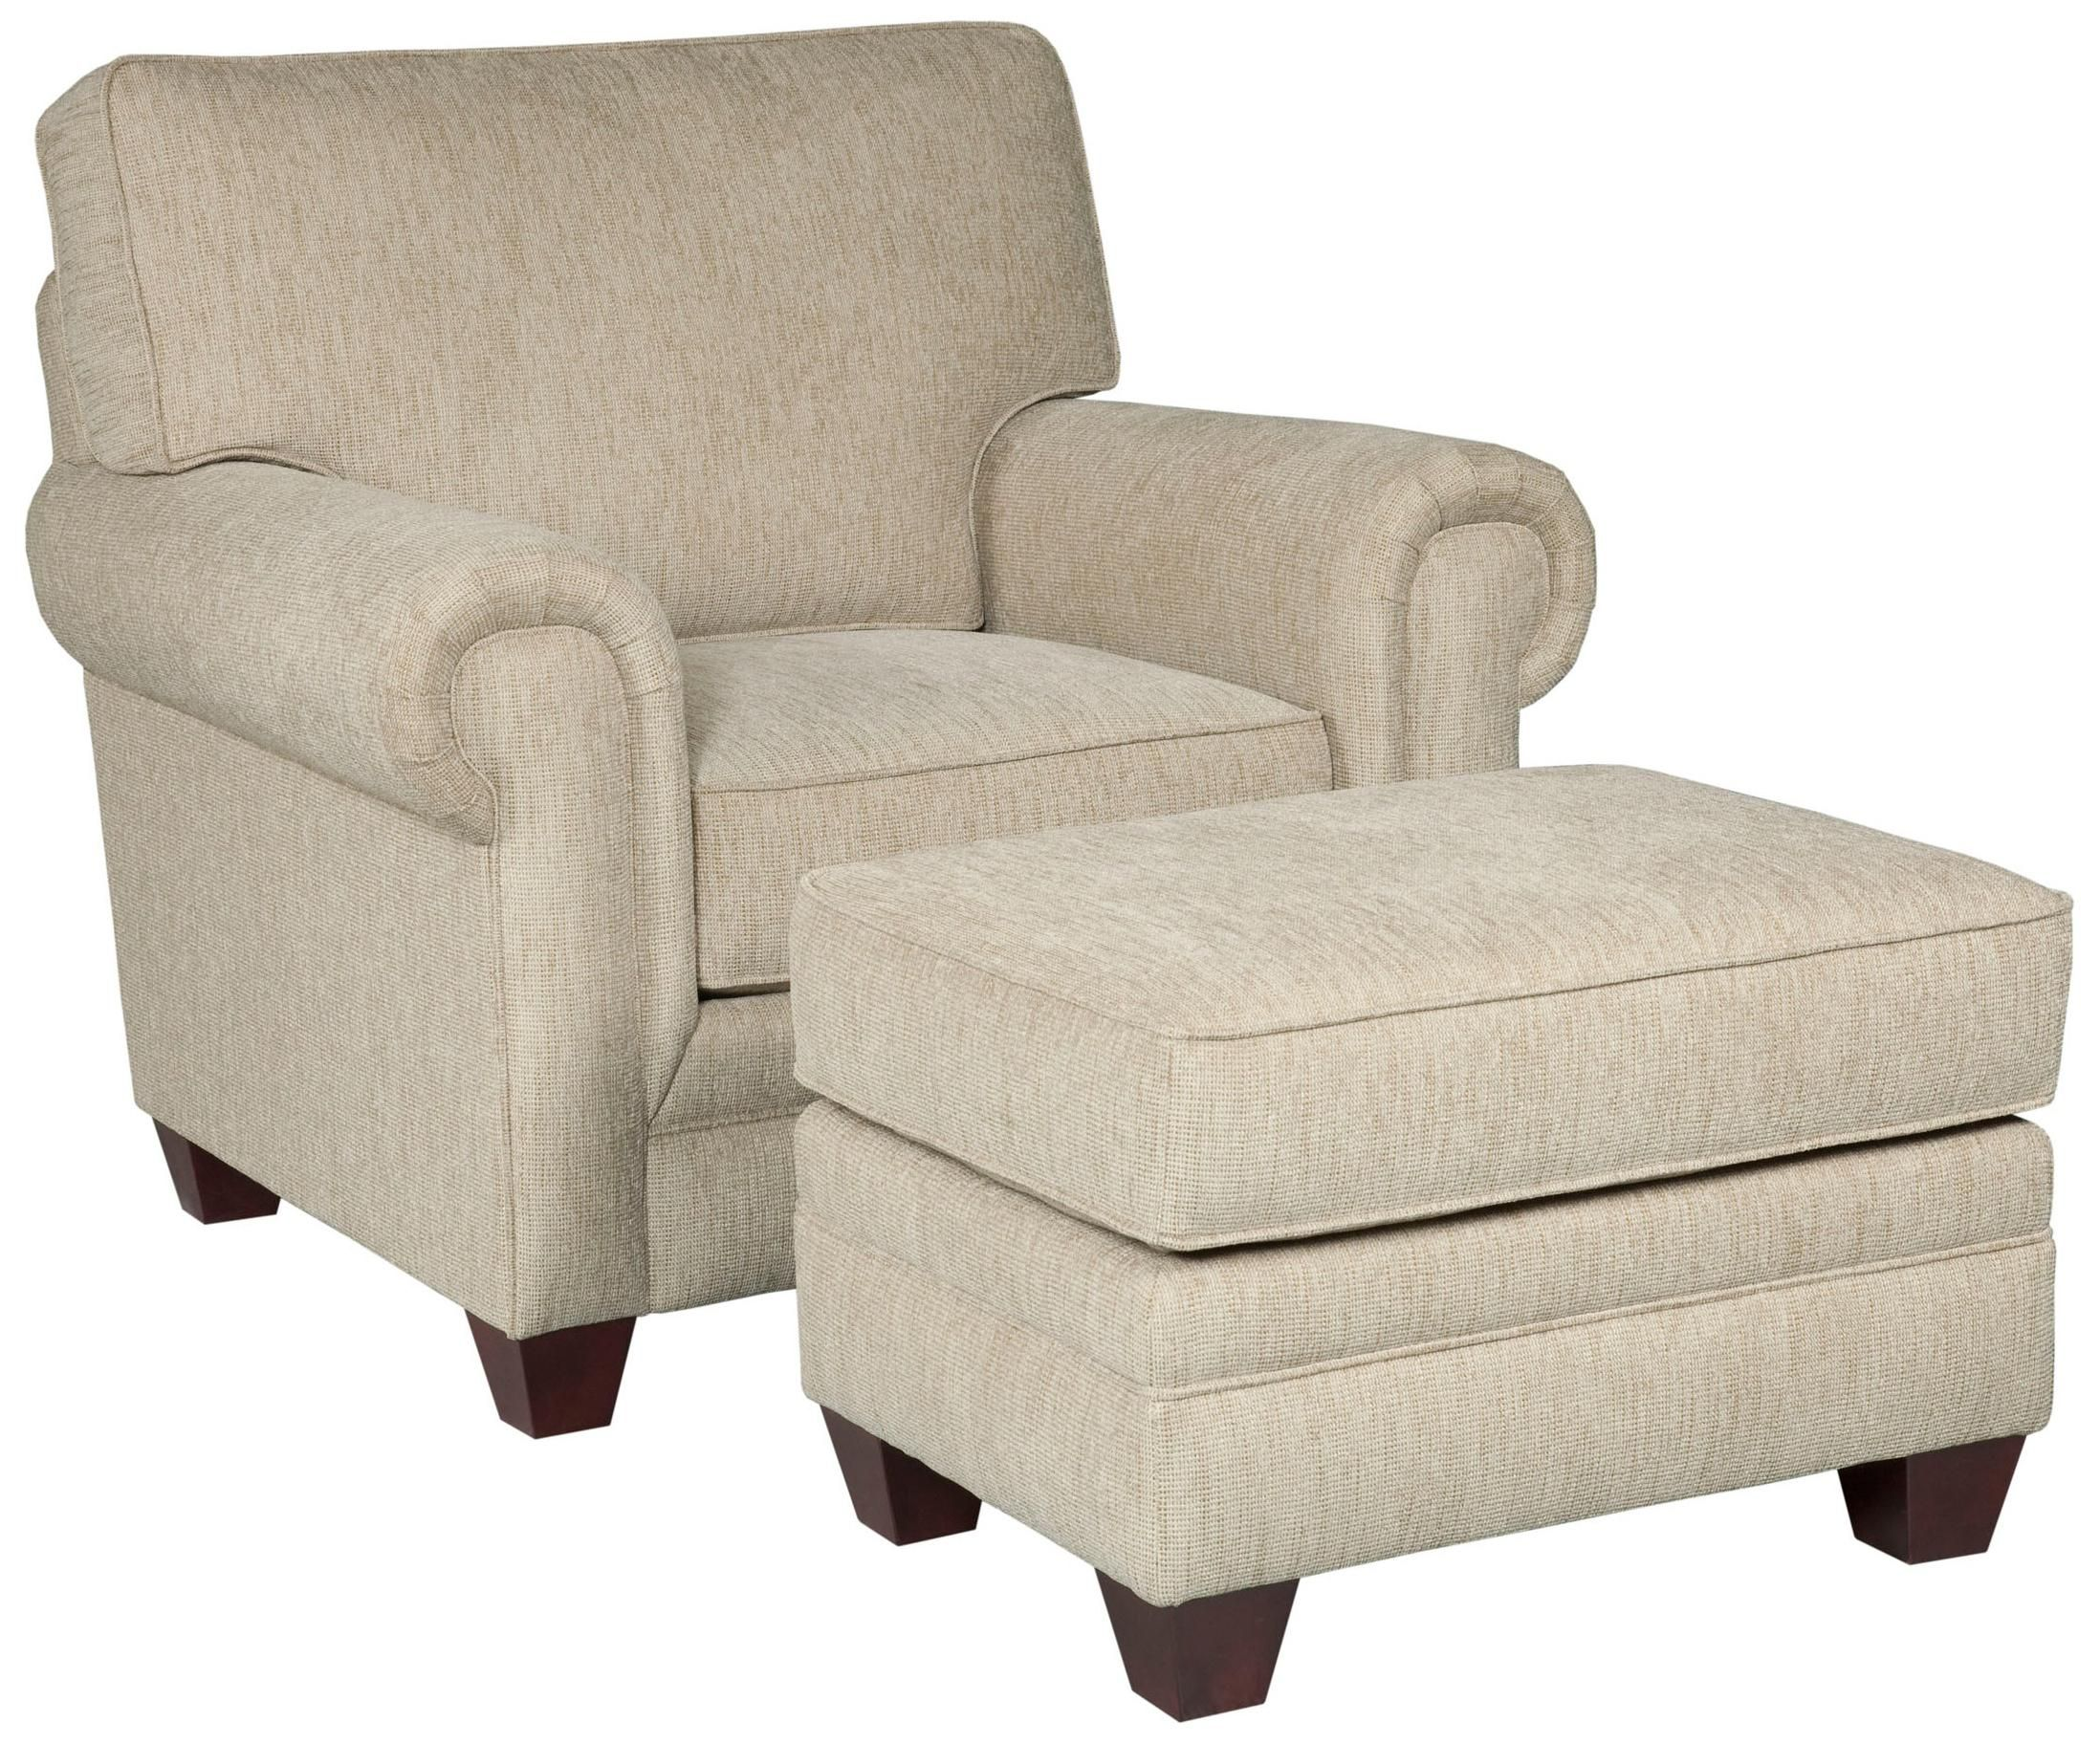 Ordinaire Monica Chair And Ottoman By Broyhill Furniture